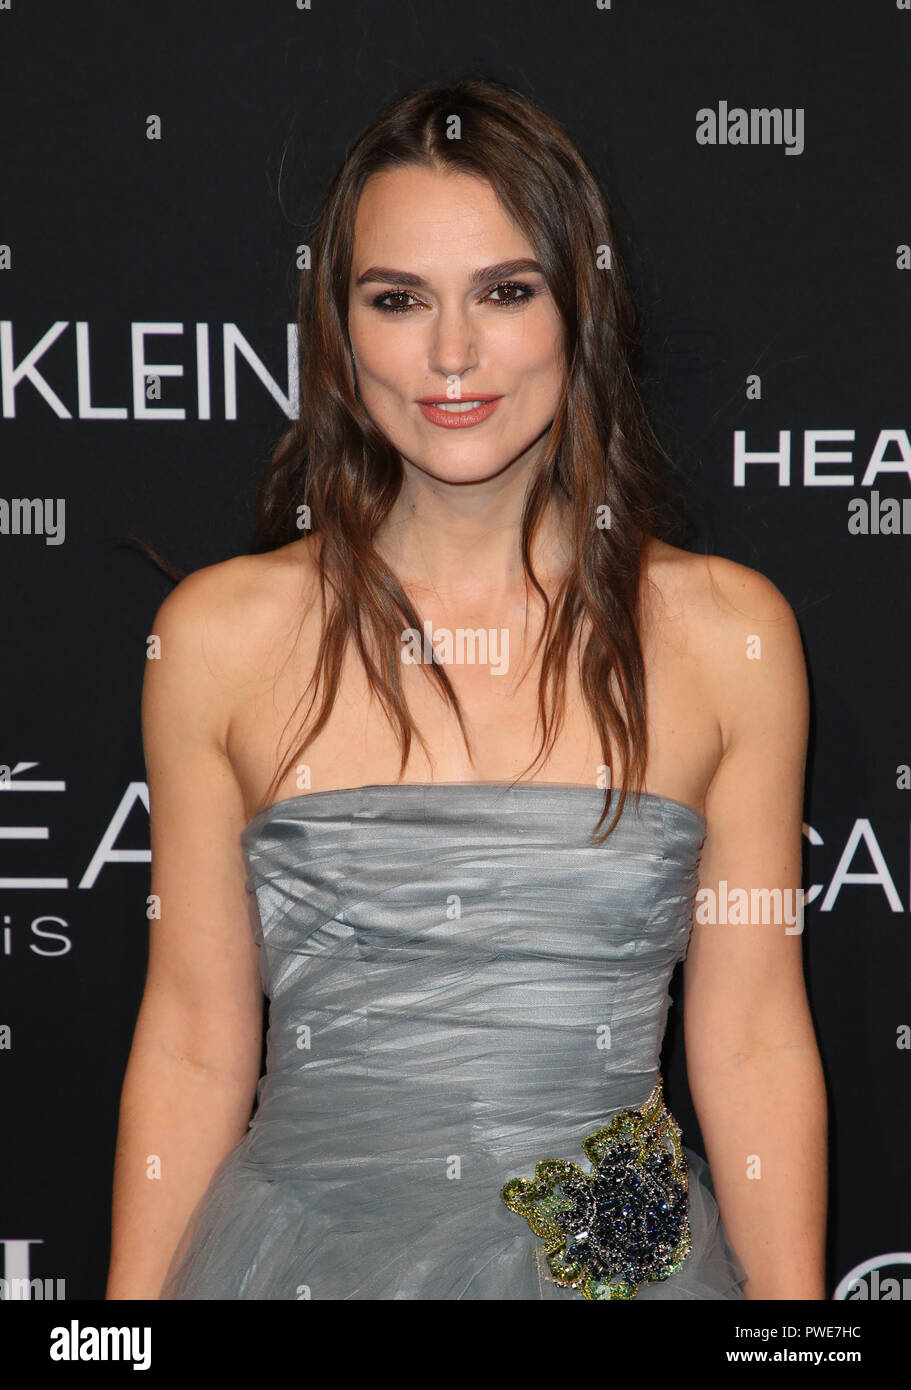 BEVERLY HILLS, CA - OCTOBER 15: Keira Knightley, at the 25th Annual ELLE Women in Hollywood Celebration at the Four Seasons Hotel in Beverly Hills, California on October 15, 2018. Credit: Faye Sadou/MediaPunch - Stock Image